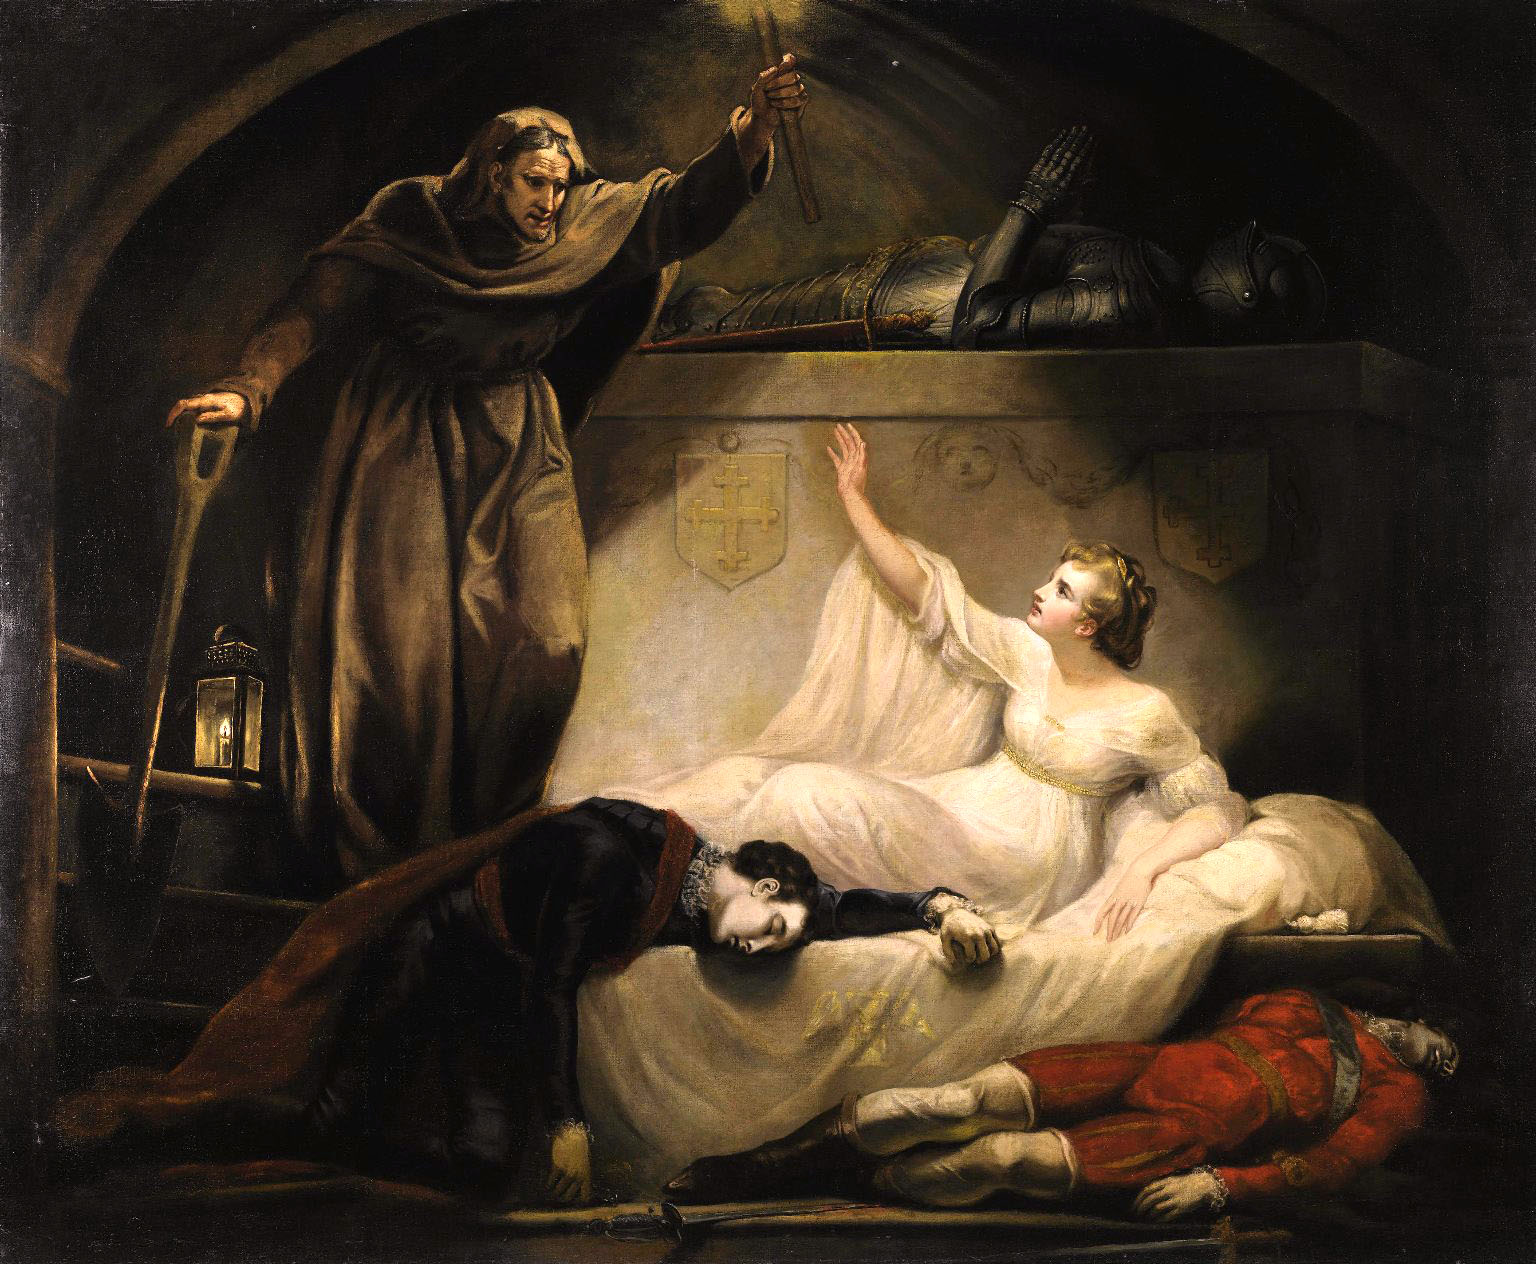 personal tragedy in william shakespeares hamlet Shakespeare's nuanced treatment of religion in hamlet has been the subject of  hamlet by william shakespeare study guide  is hamlet a tragedy.